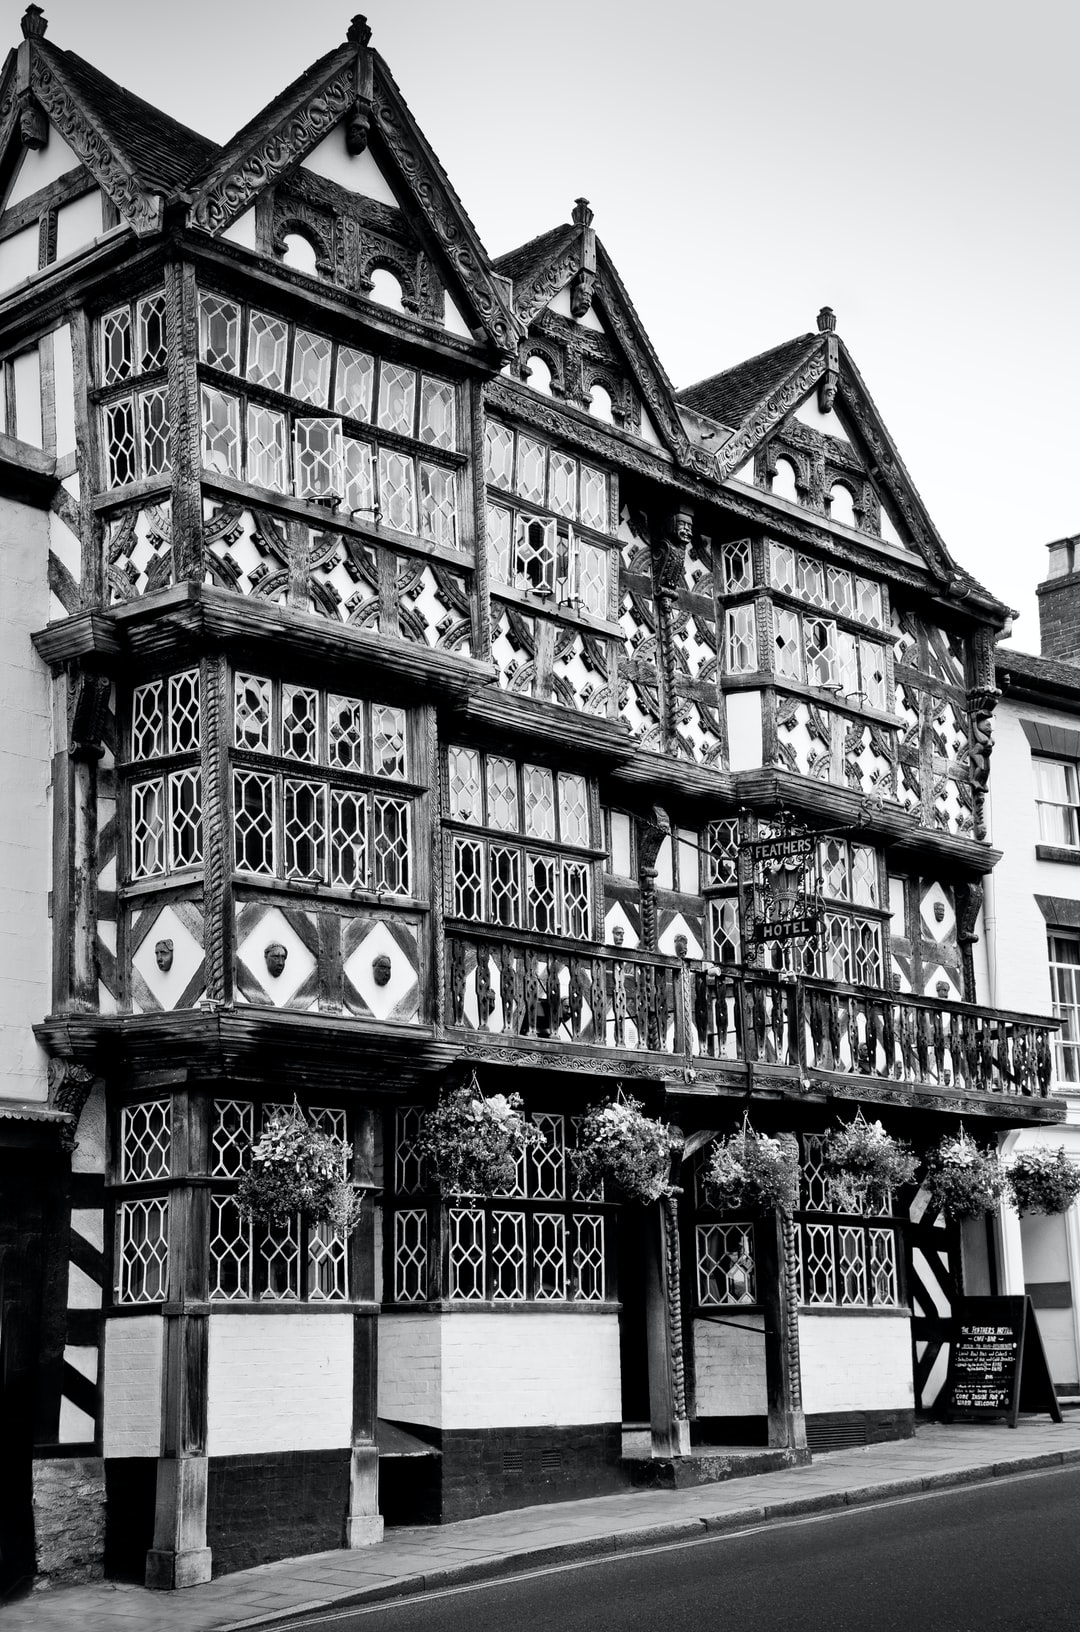 Here is a photograph taken from The Feathers Hotel.  Located in Ludlow, Shropshire, England.  Website : www.michaeldbeckwith.com   Email : michael@michaeldbeckwith.com